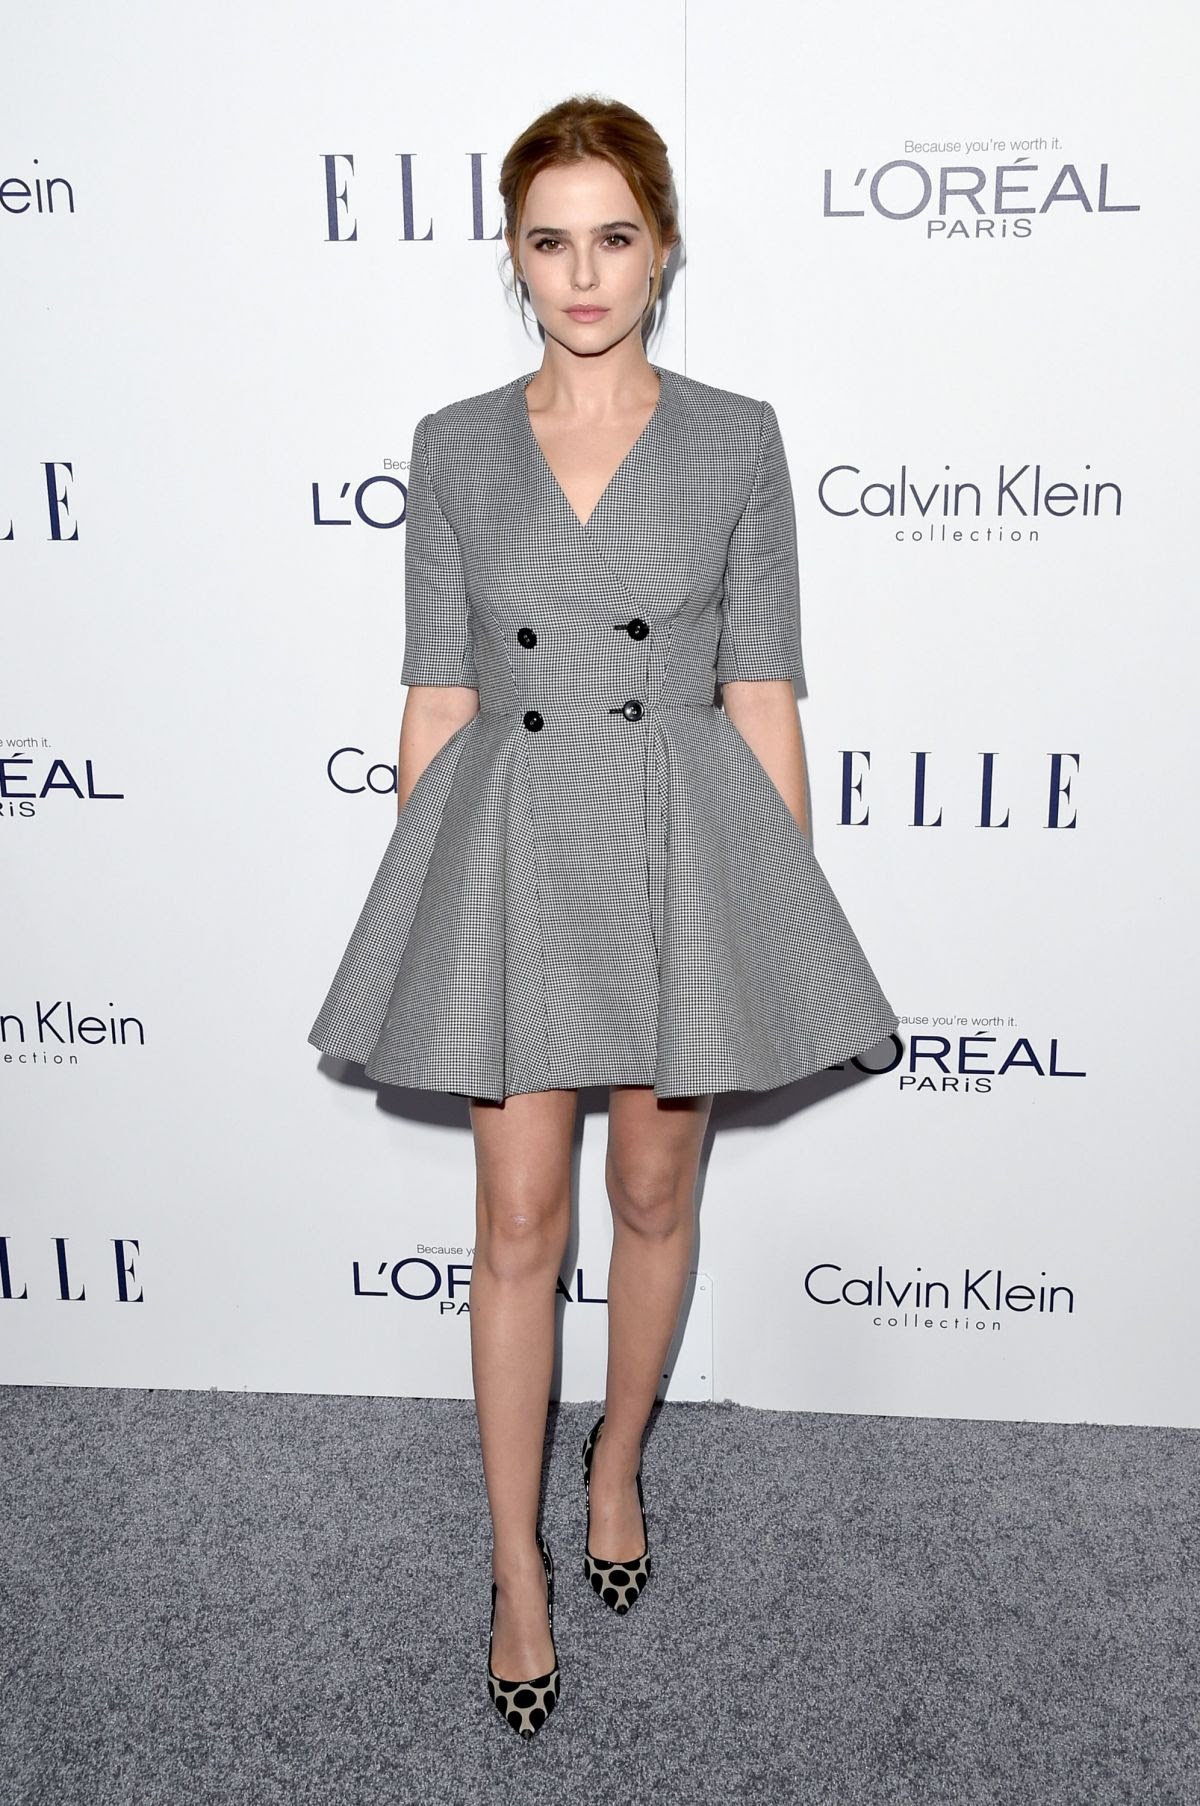 ZOEY DEUTCH at 2015 Elle Women in Hollywood Awards in Los Angeles 10/19/2015